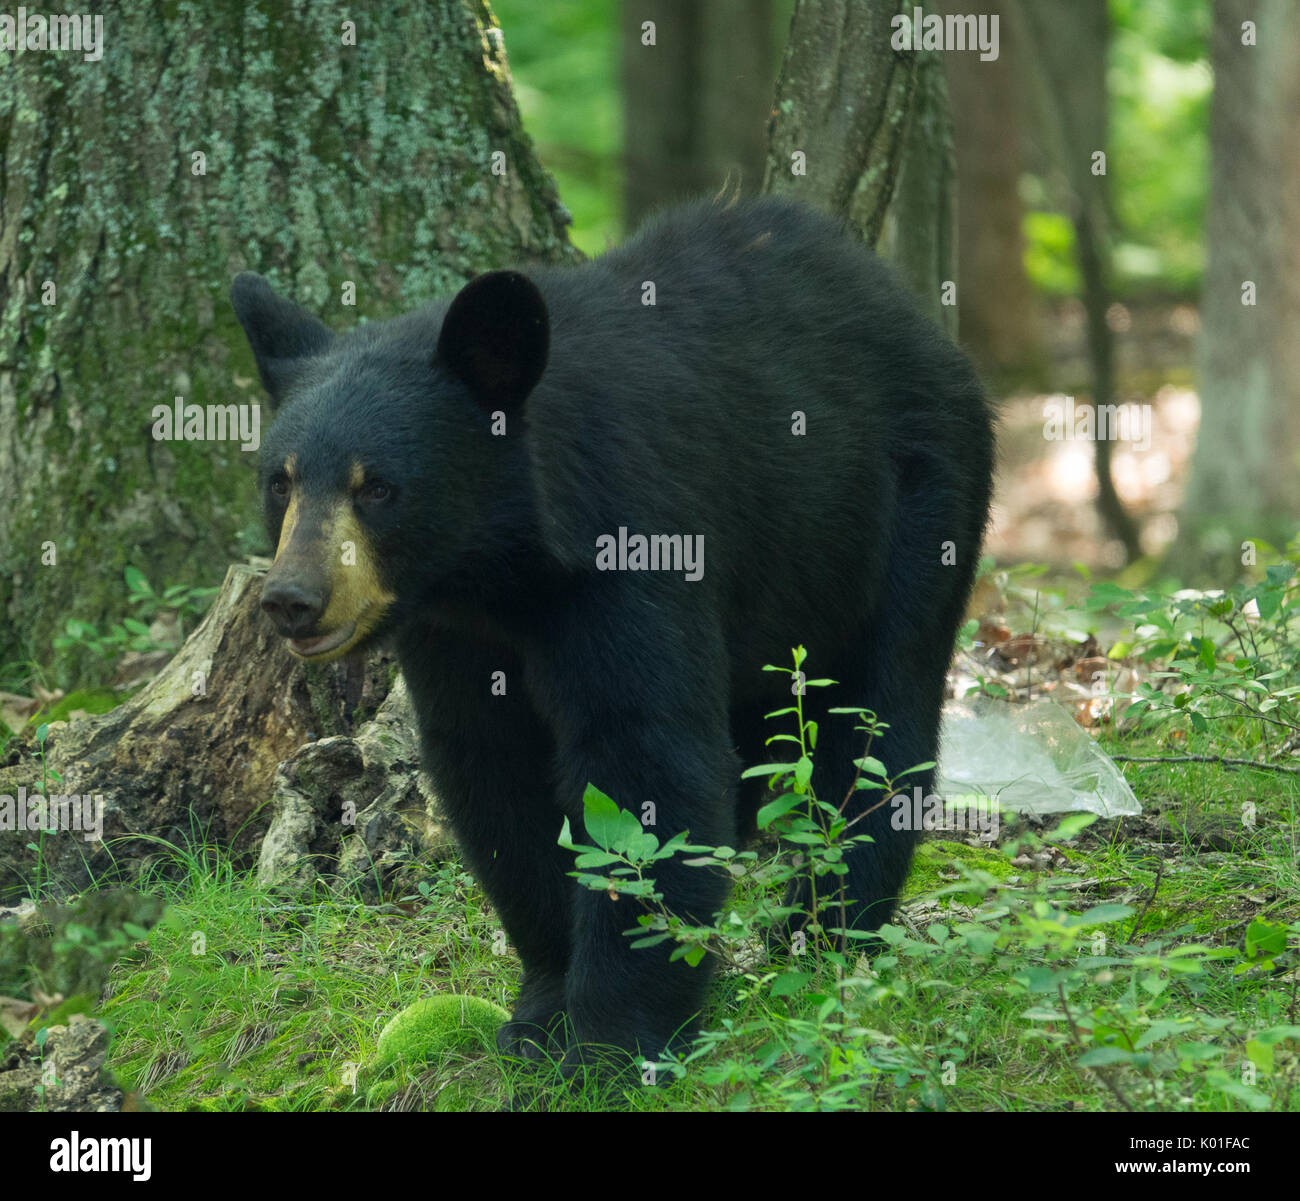 Black Bear in the Pennsylvania woods, sniffing the air for food - Stock Image